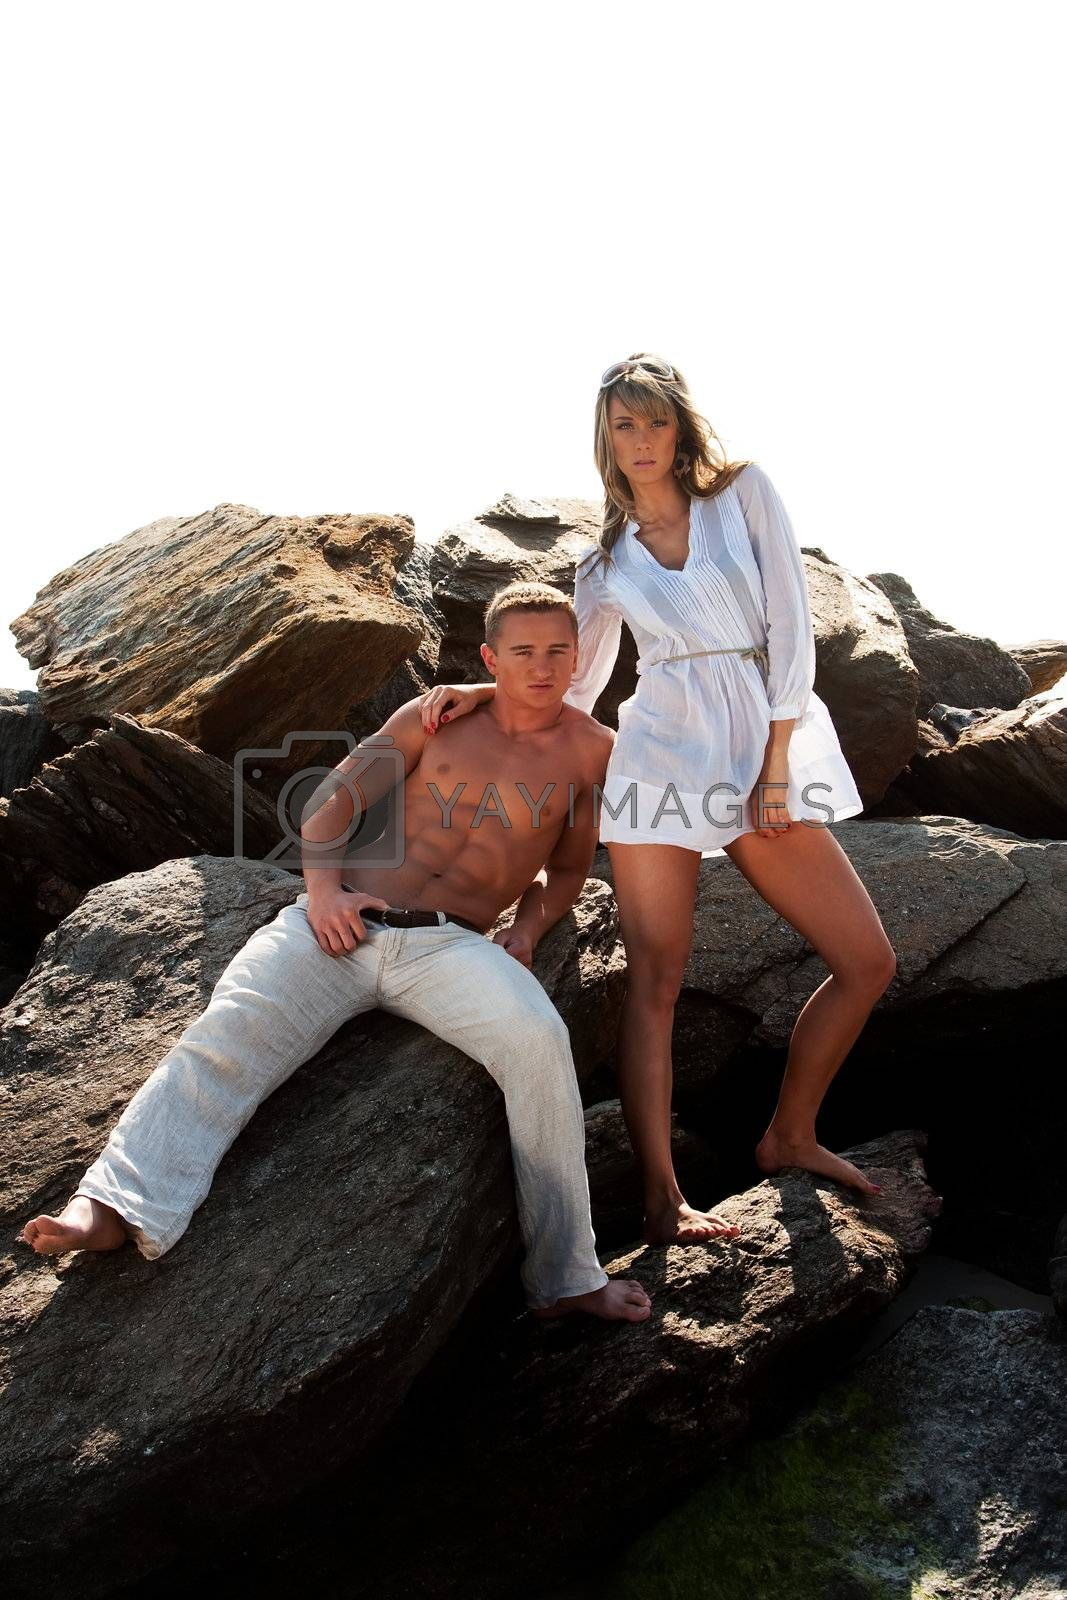 Caucasian guy and girl together on rock formation. Female is wearing long white shirt and holding sunglasses, standing on rocks. Guy showing muscular abs and bare torso wearing beige pants, heaving cool attitude, sitting on rocks. Together hanging out.